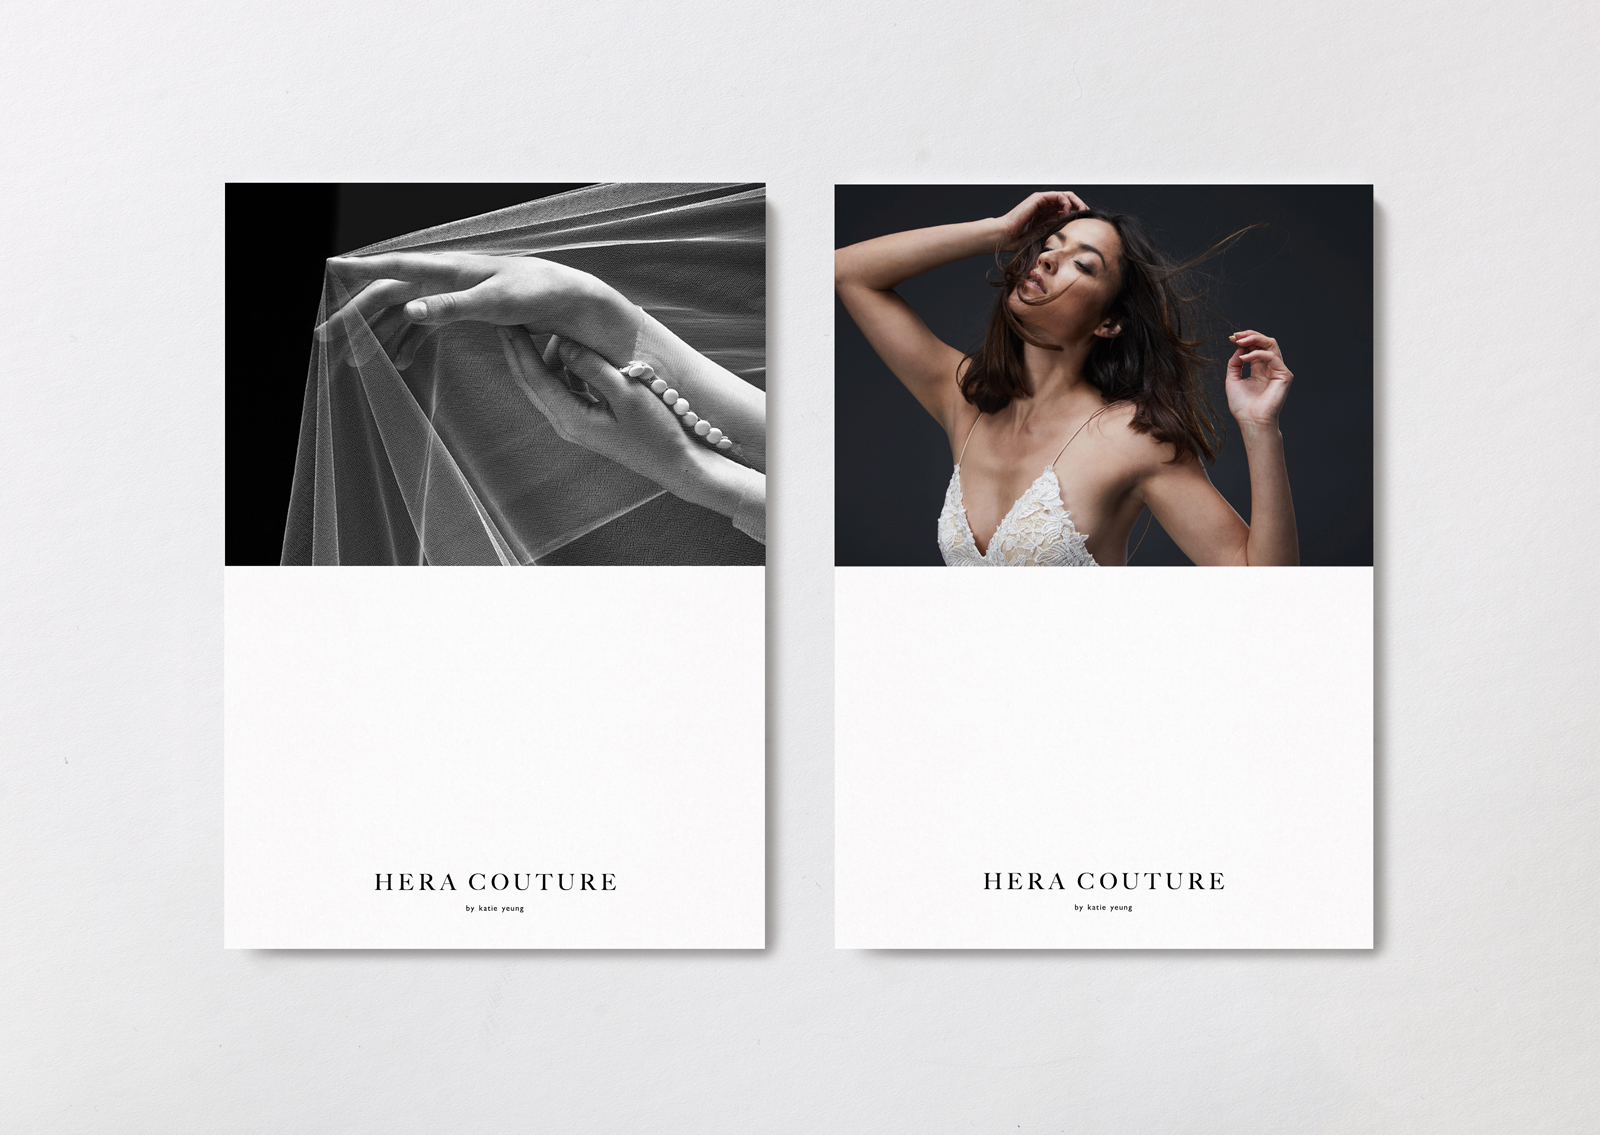 Hera Couture brand postcards – show close up of bride and intricate button and lace details